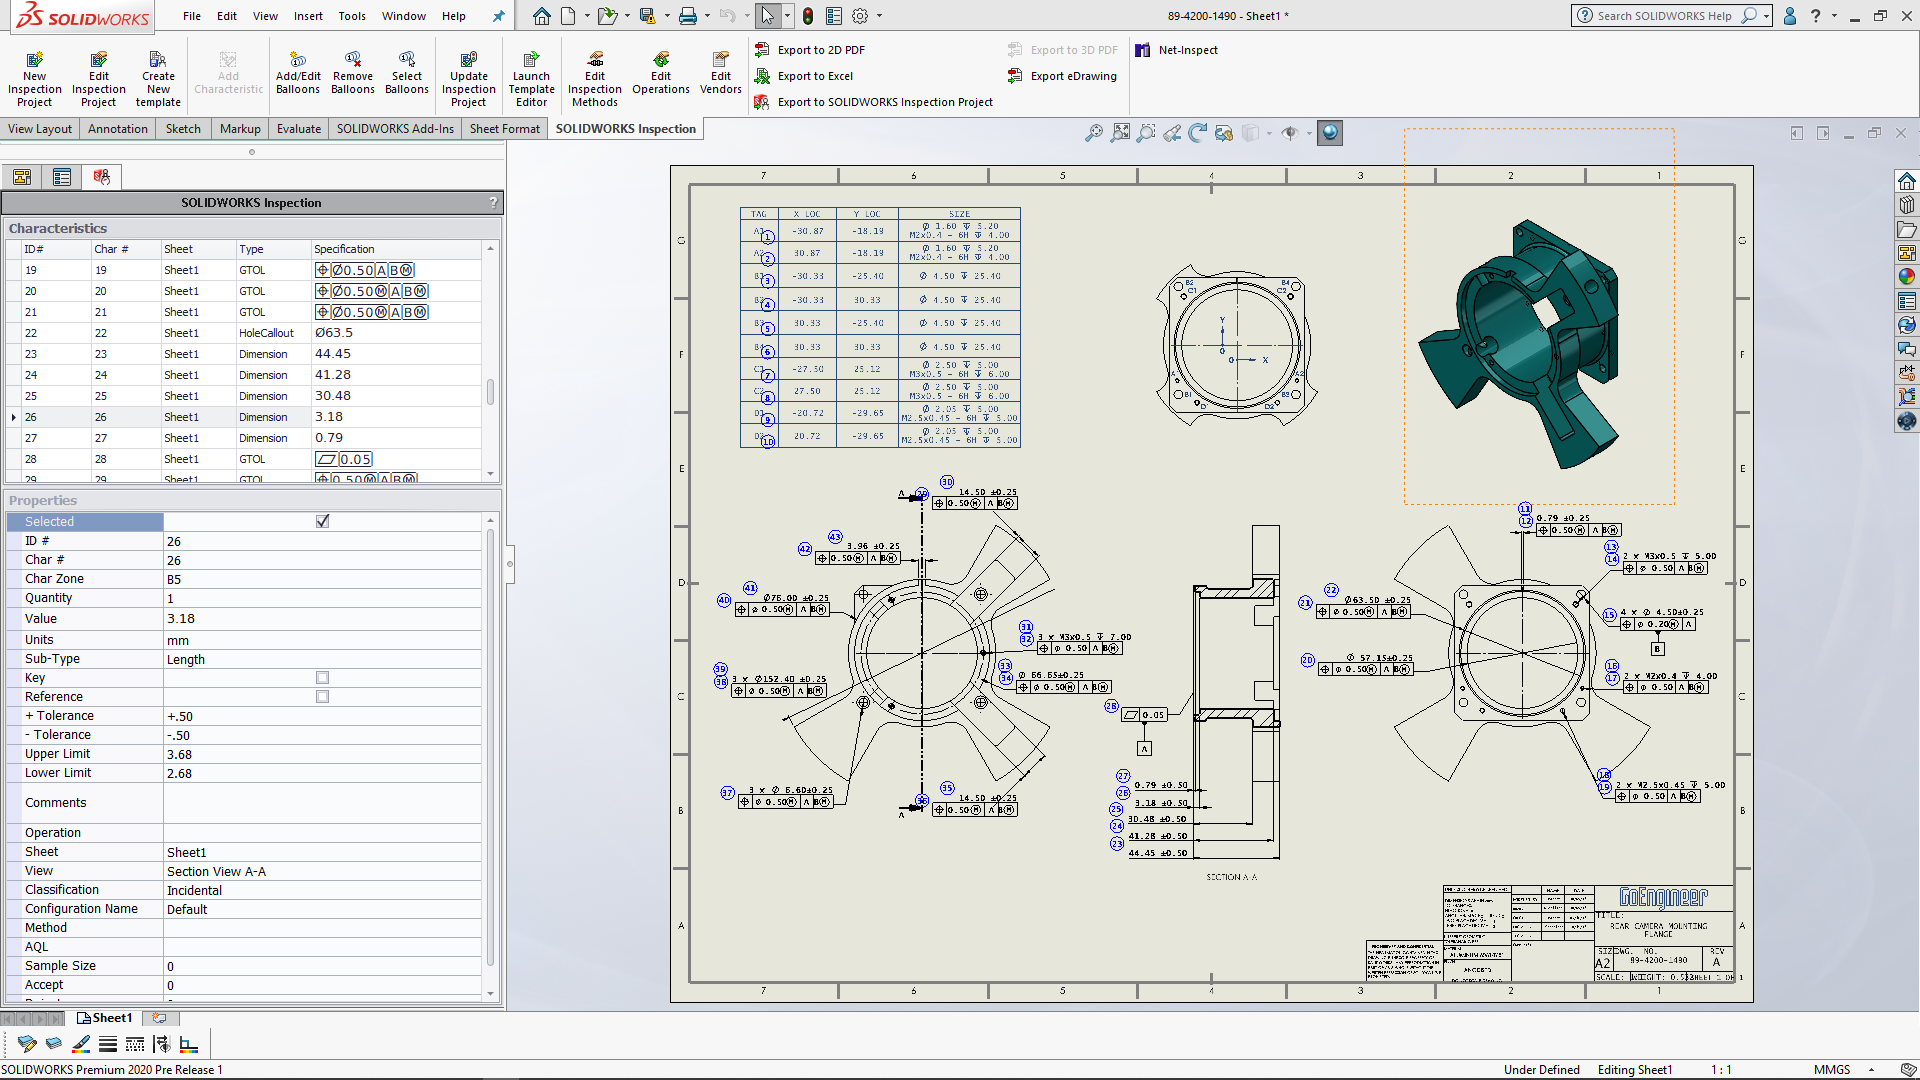 Learn How To Use SOLIDWORKS Inspection to Create Fast & Accurate Quality Documents